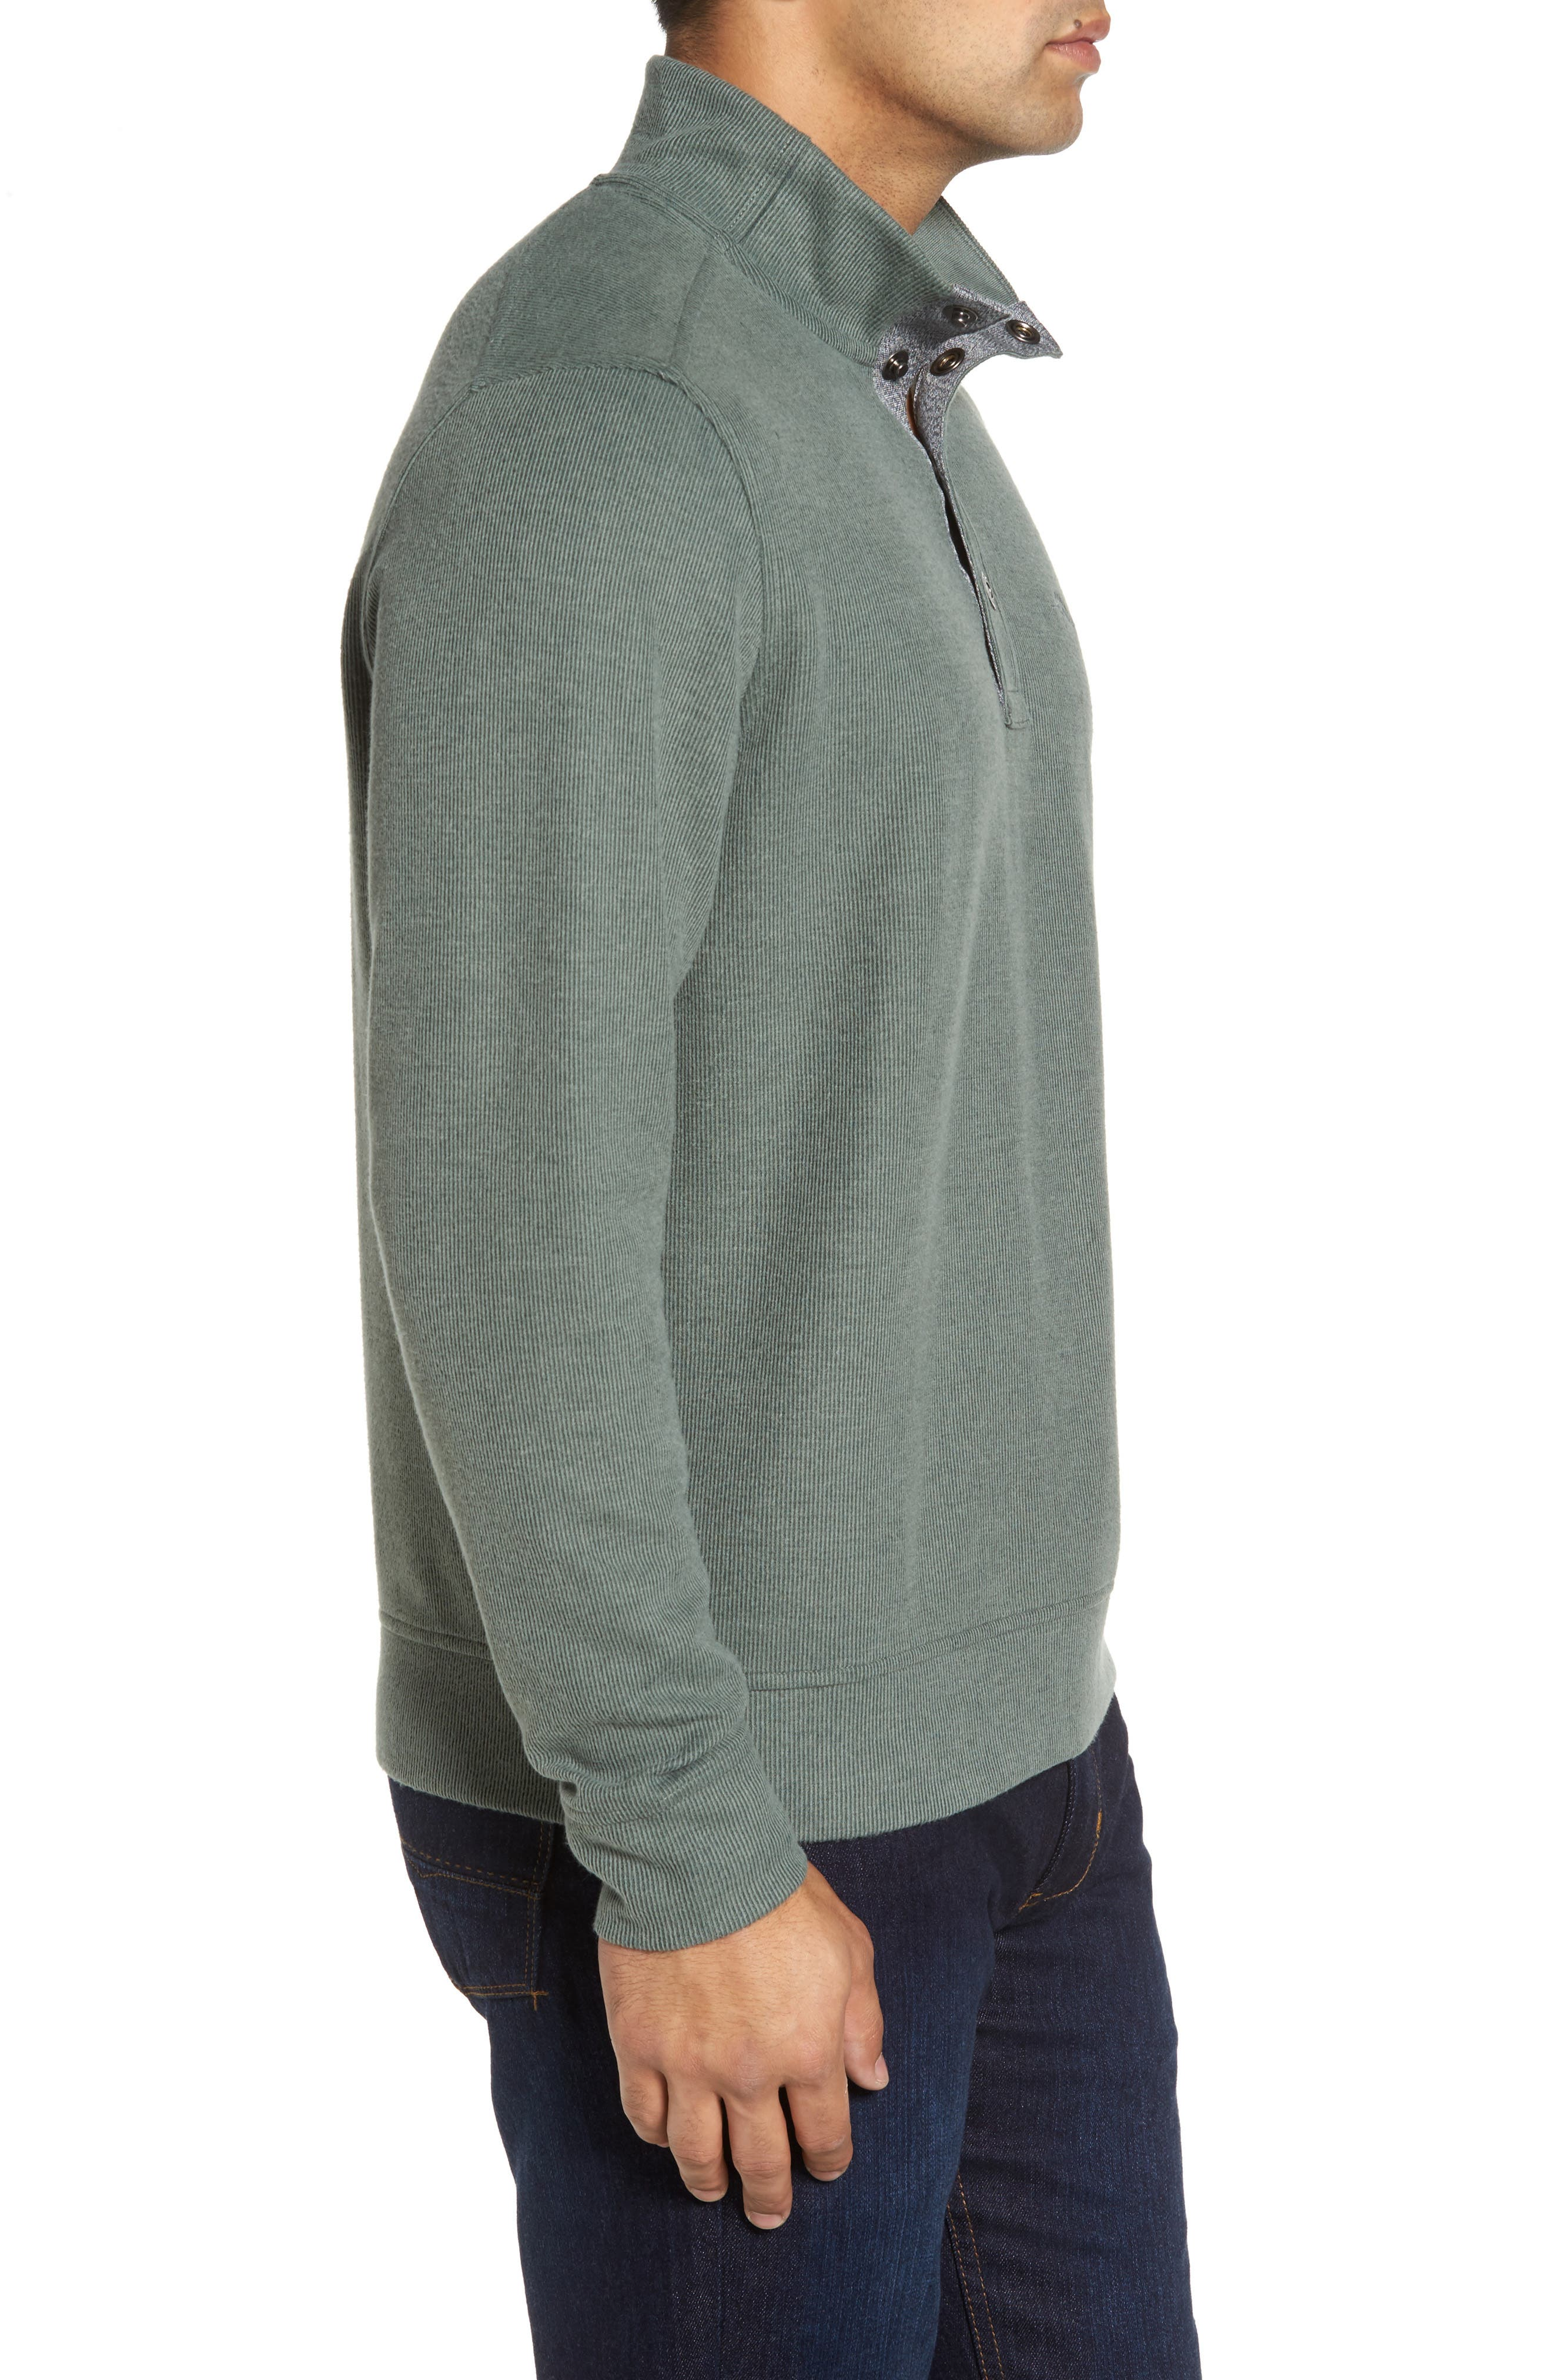 Cold Springs Snap Mock Neck Sweater,                             Alternate thumbnail 16, color,